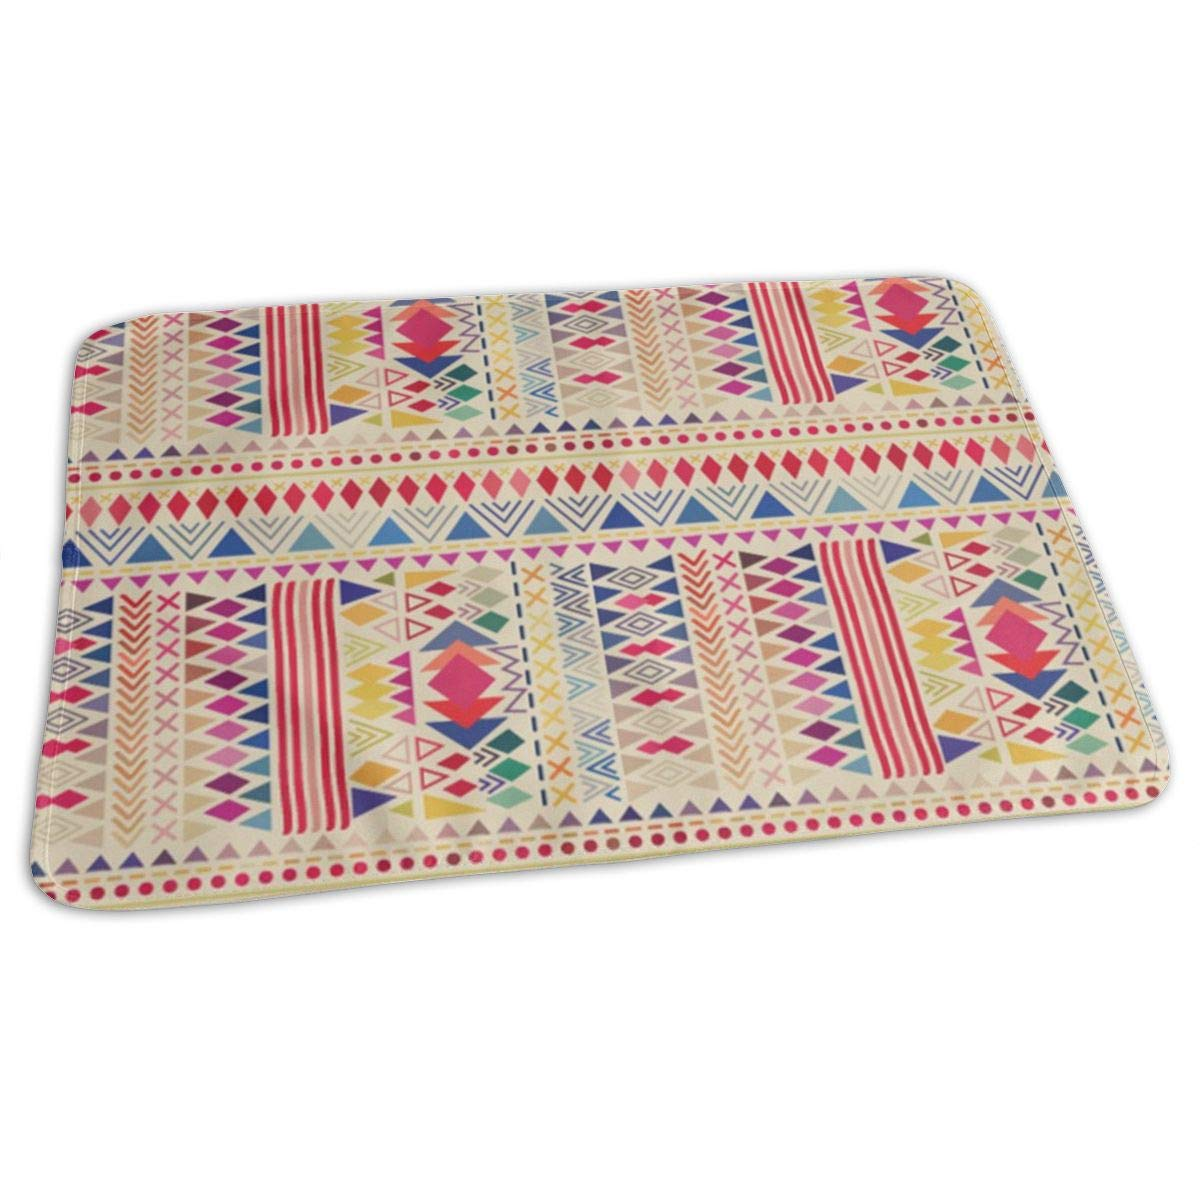 Osvbs Lovely Baby Reusable Waterproof Portable Aztec Style Pattern with Triangle and Line Changing Pad Home Travel 27.5''x19.7'' by Osvbs